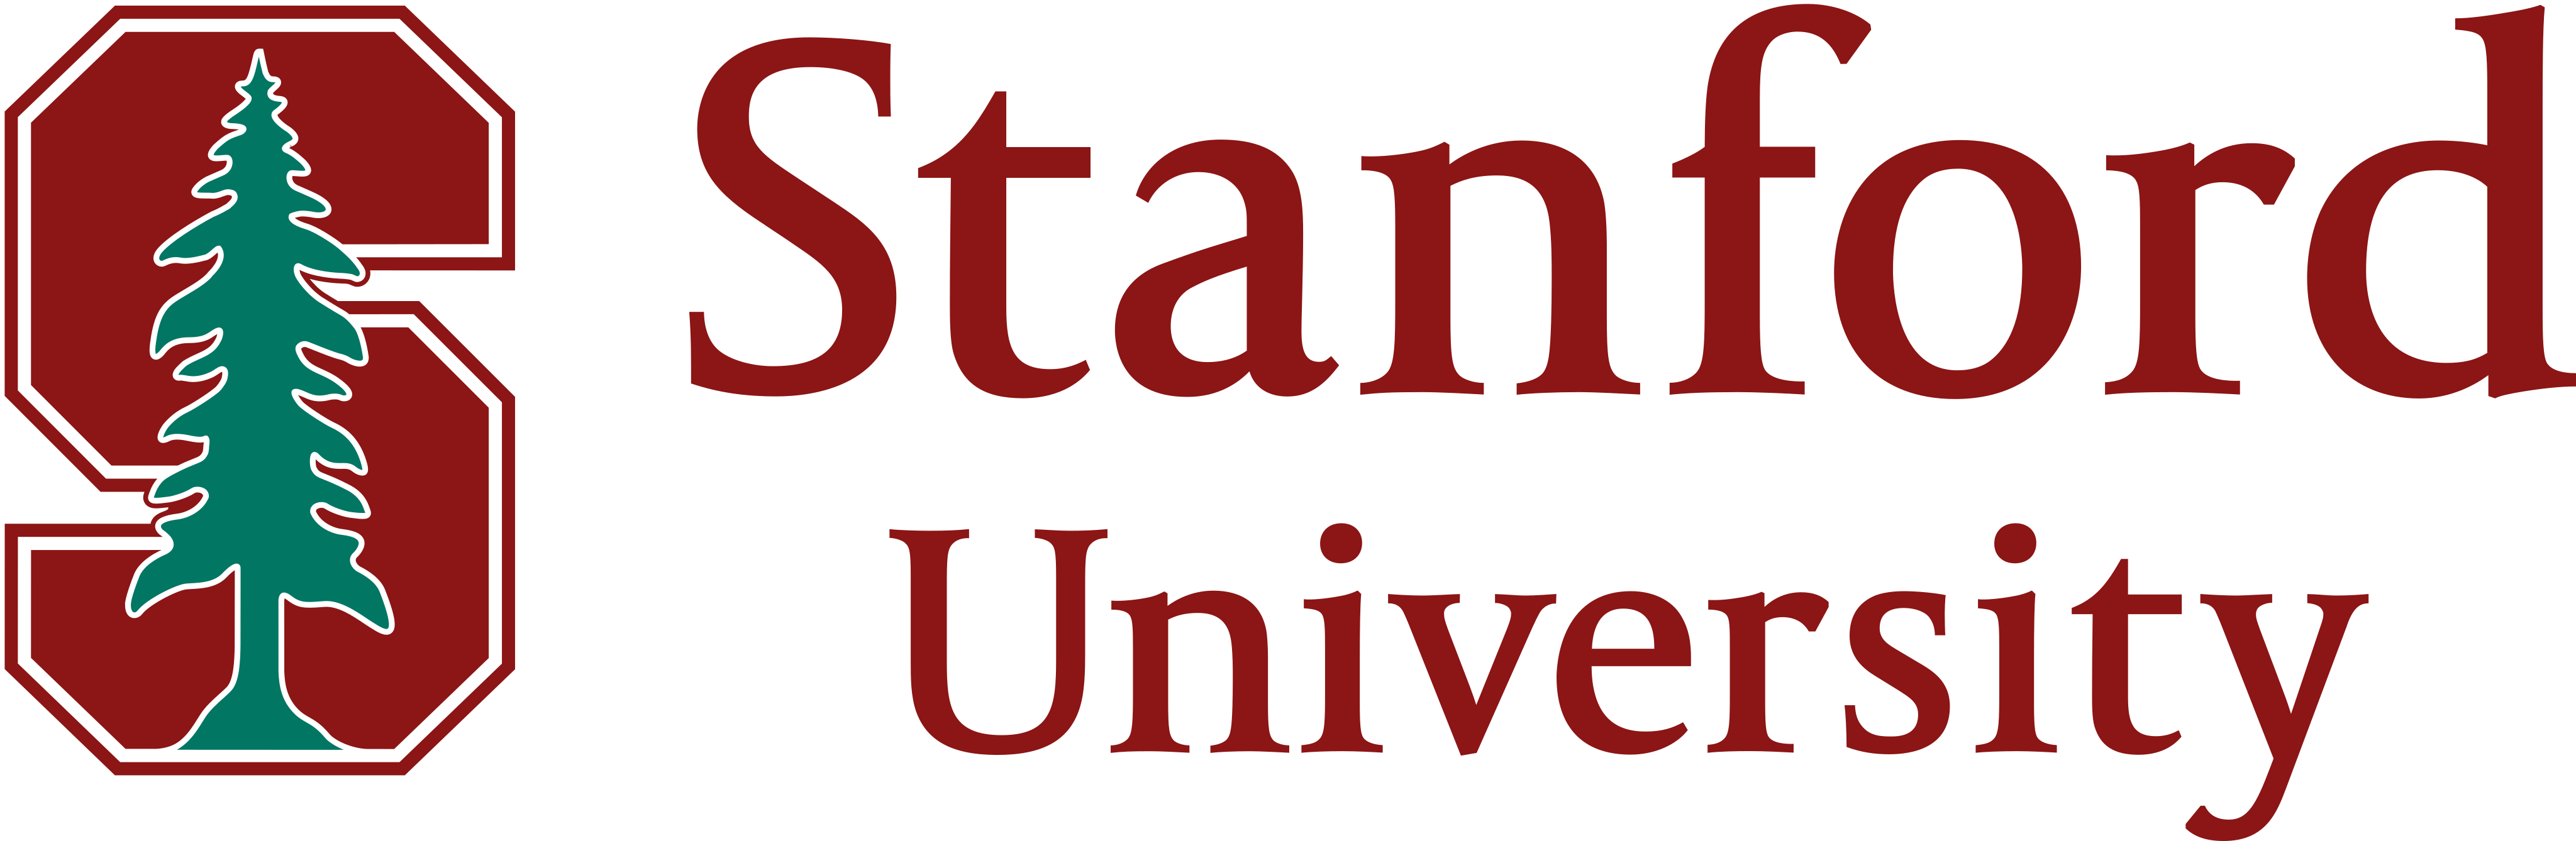 Universidade Stanford Logo.